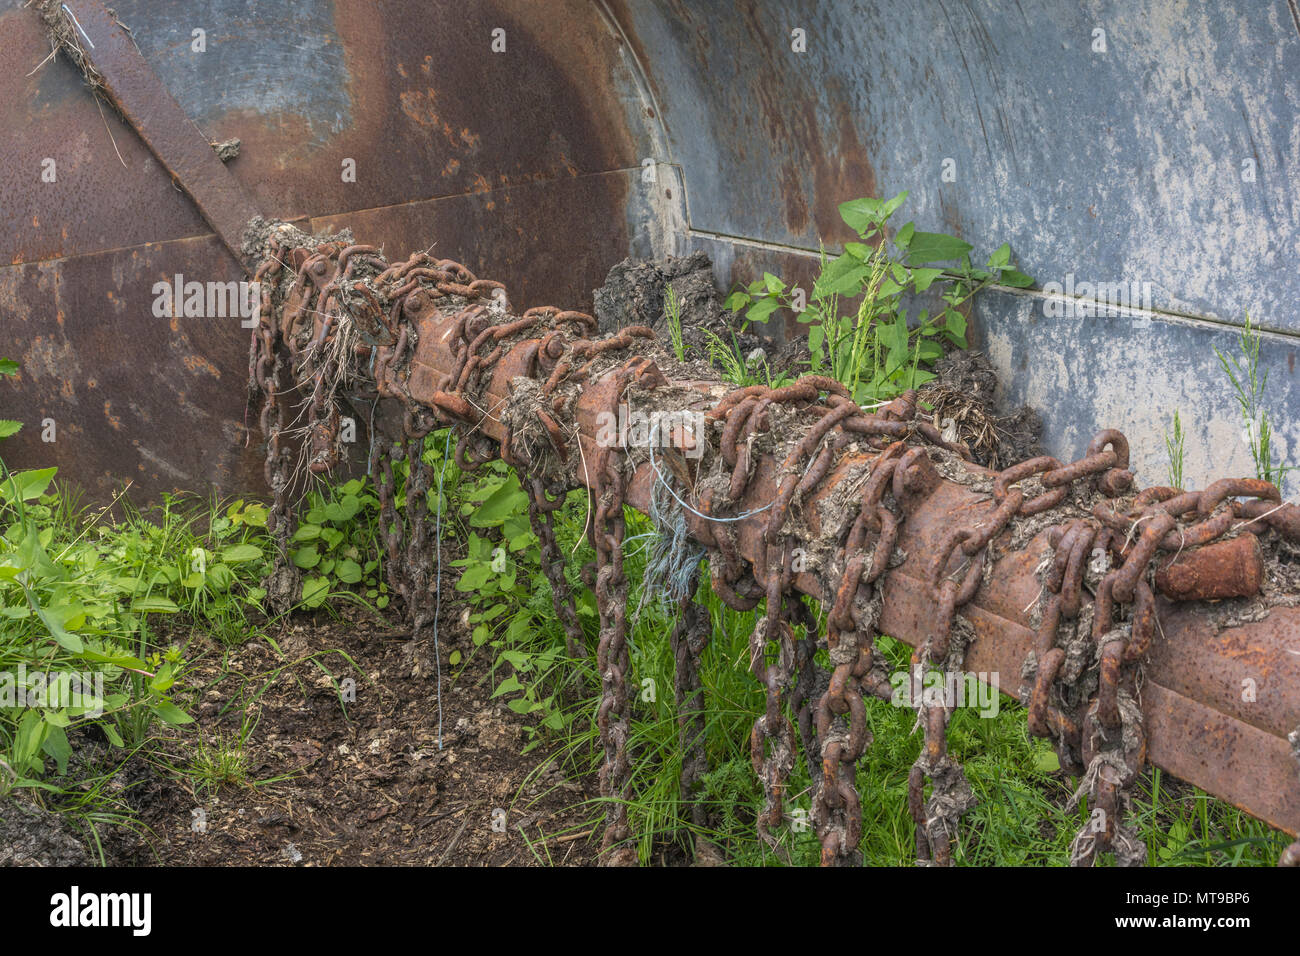 View inside the drum of a rotary flail chain muck spreader with weeds growing in old muck - typical farm machinery, and rustyy chains. - Stock Image